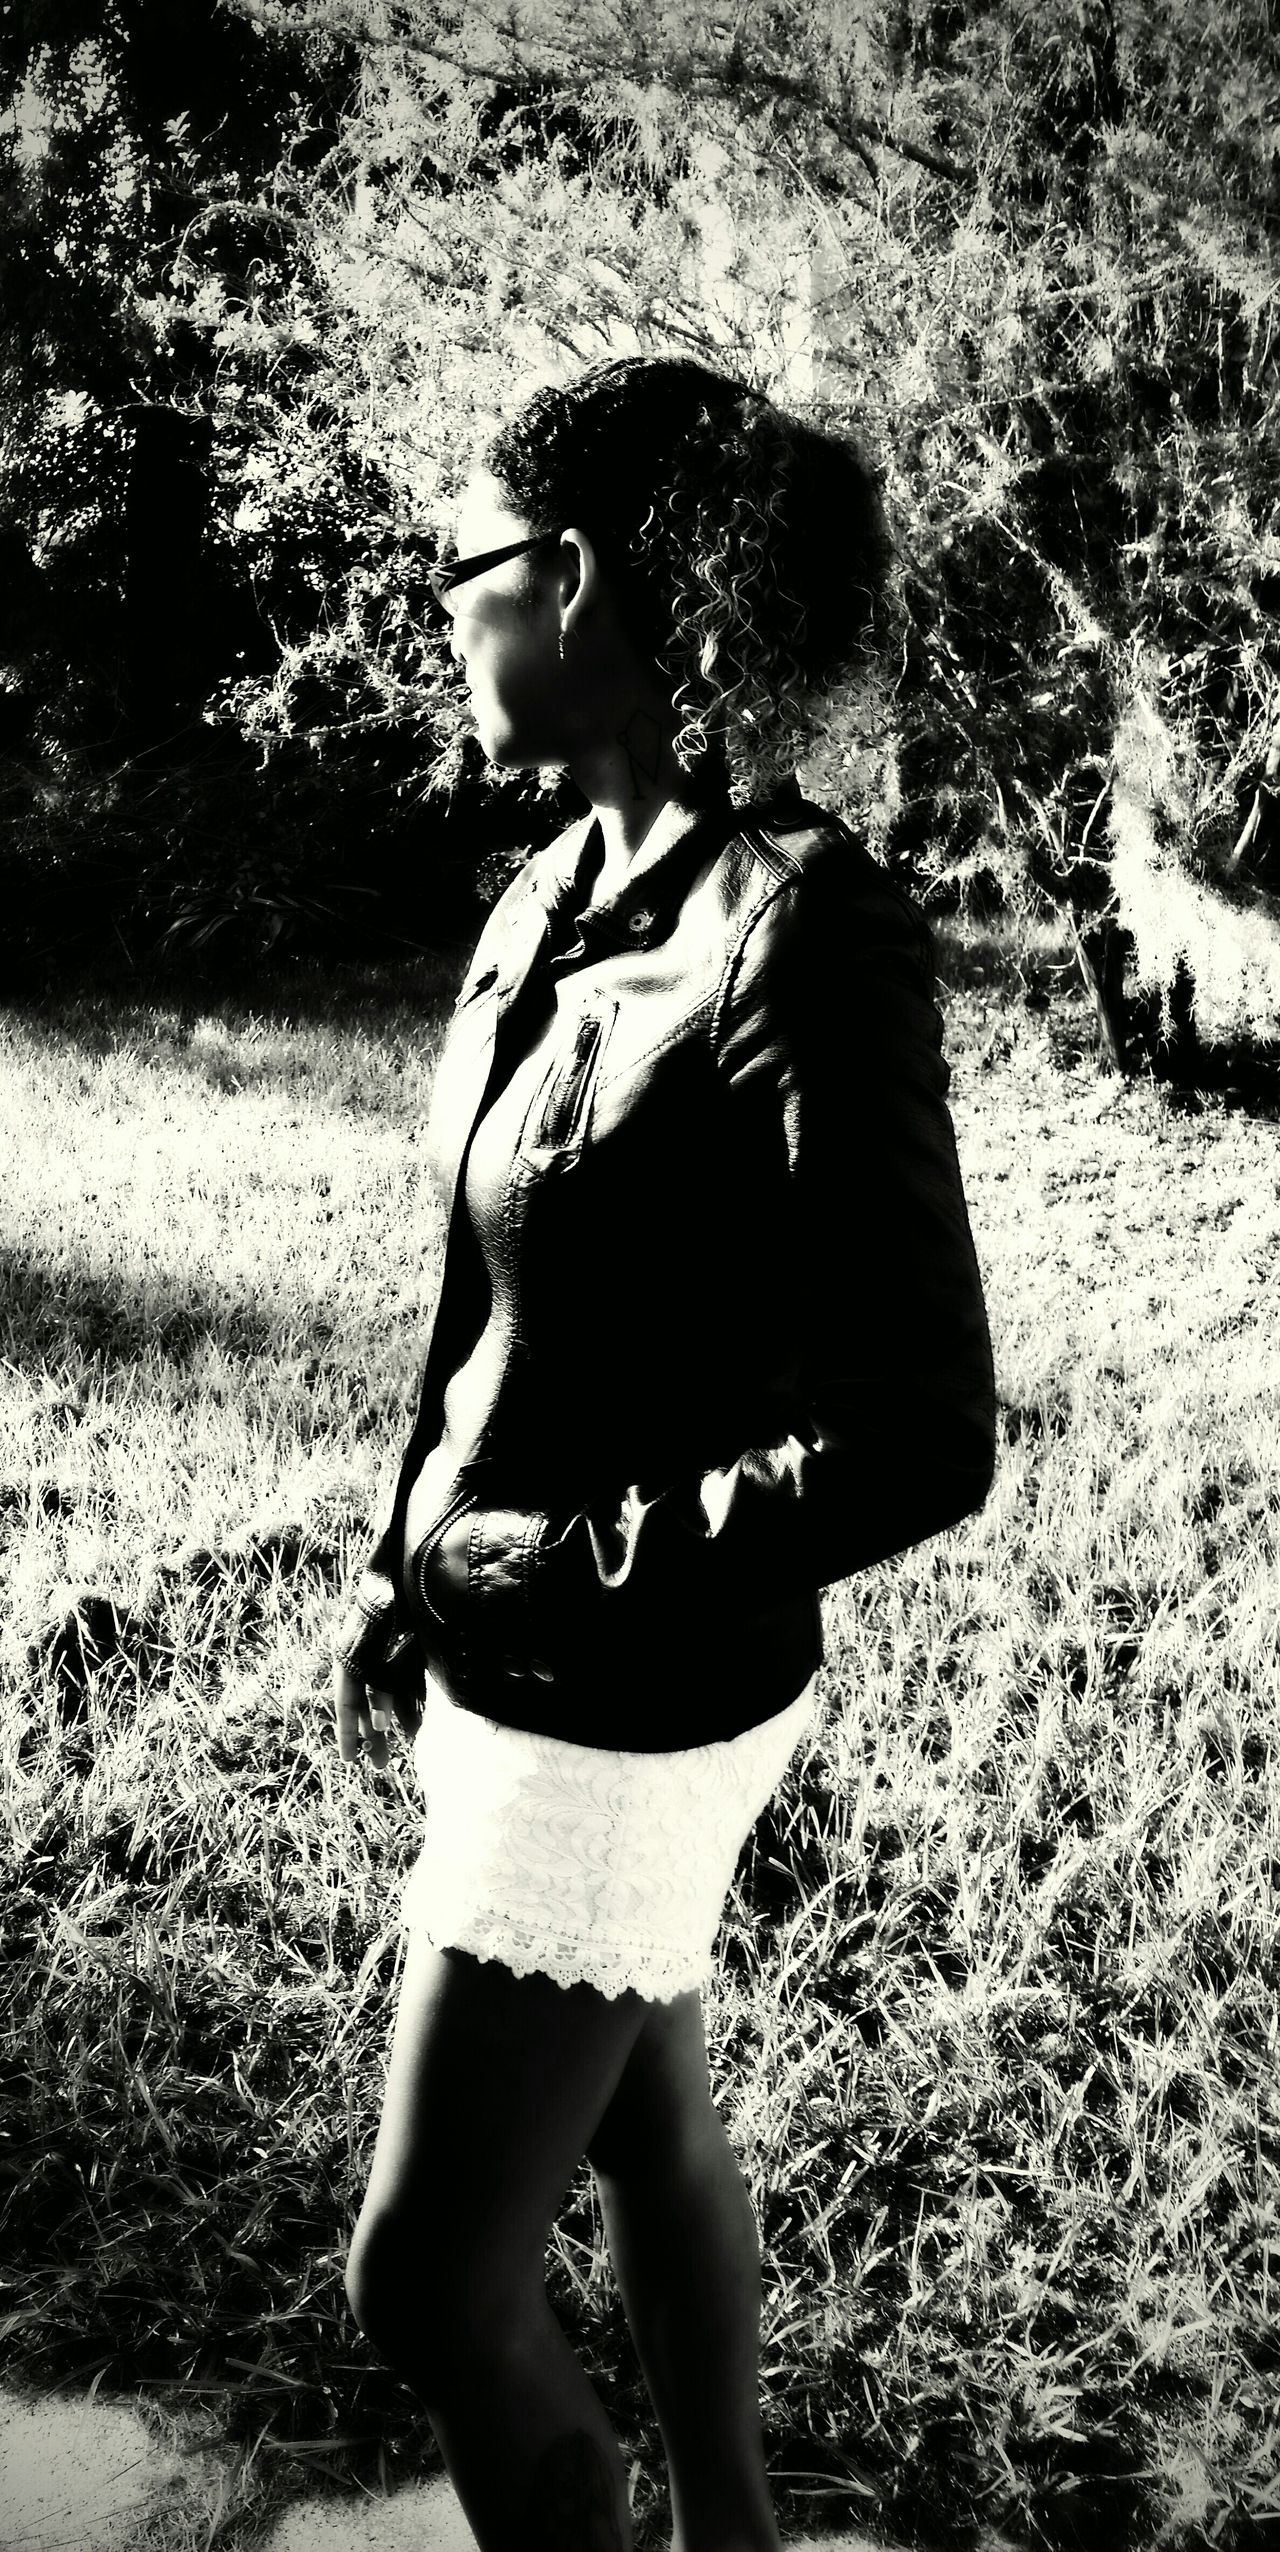 Self Portrait Leather Jacket Mossy Tree Curly Hair White Shorts Morning Light Black And White Photography